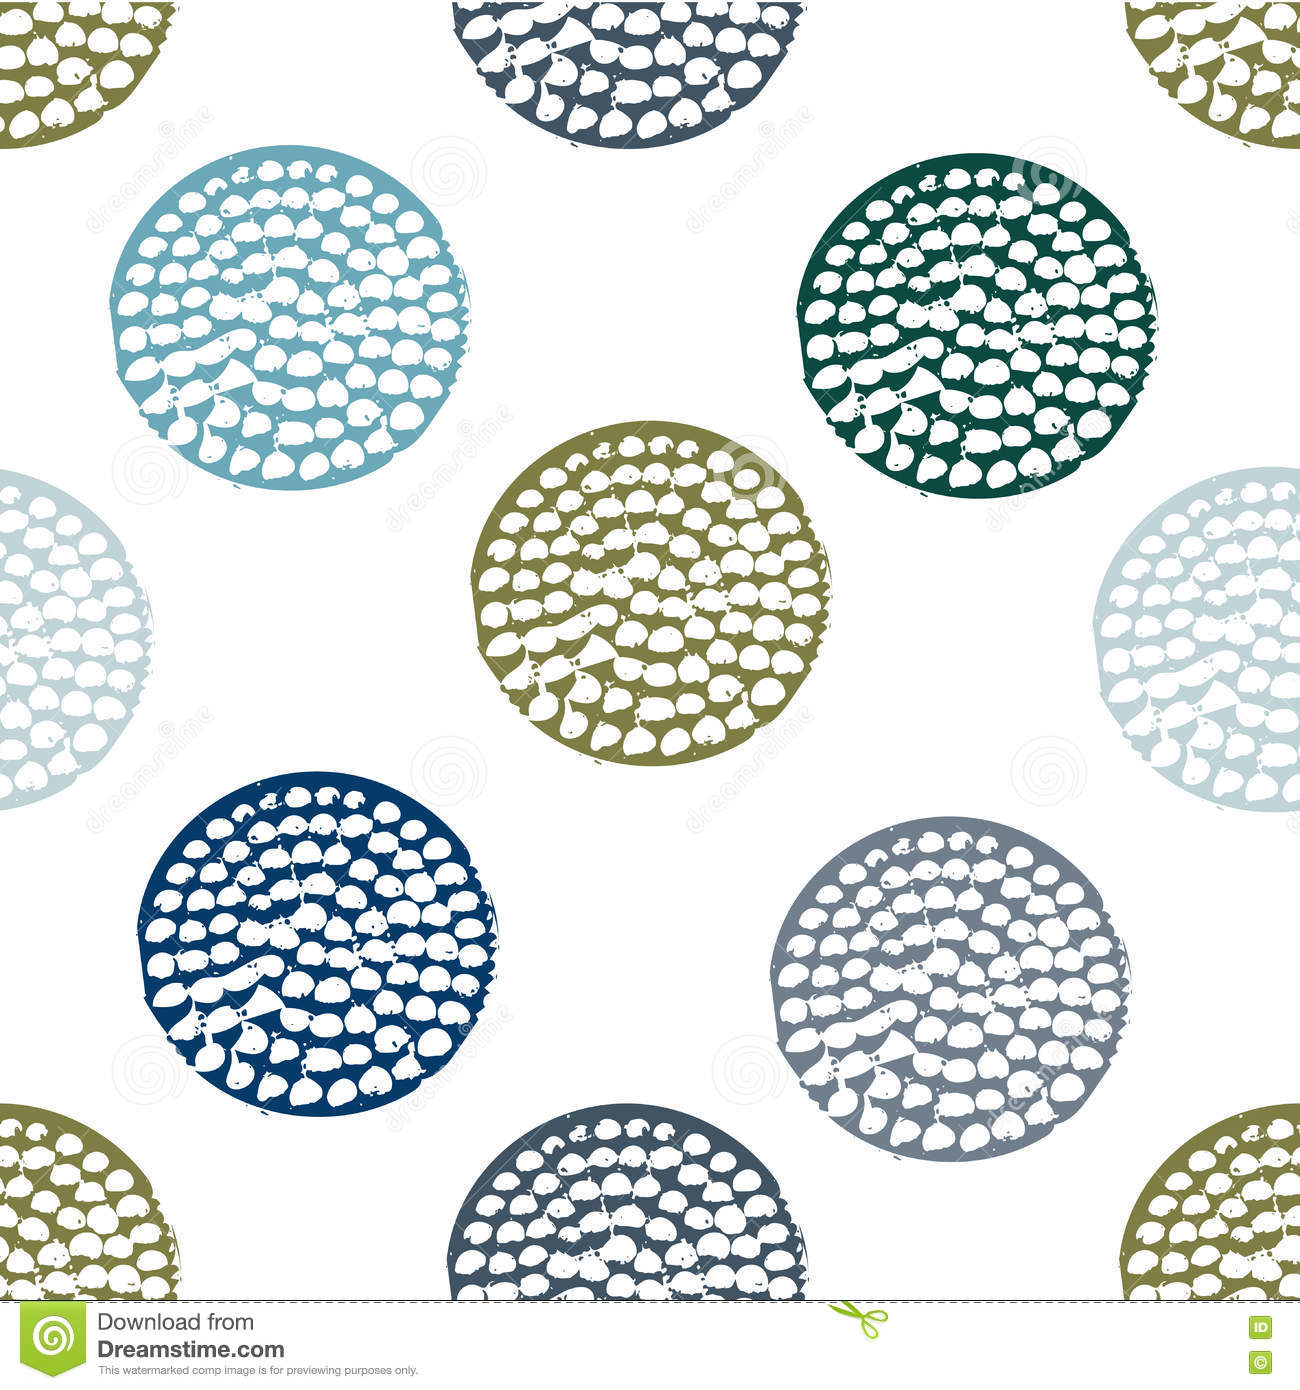 Download Grunge Polka Dots Digital Paper Image